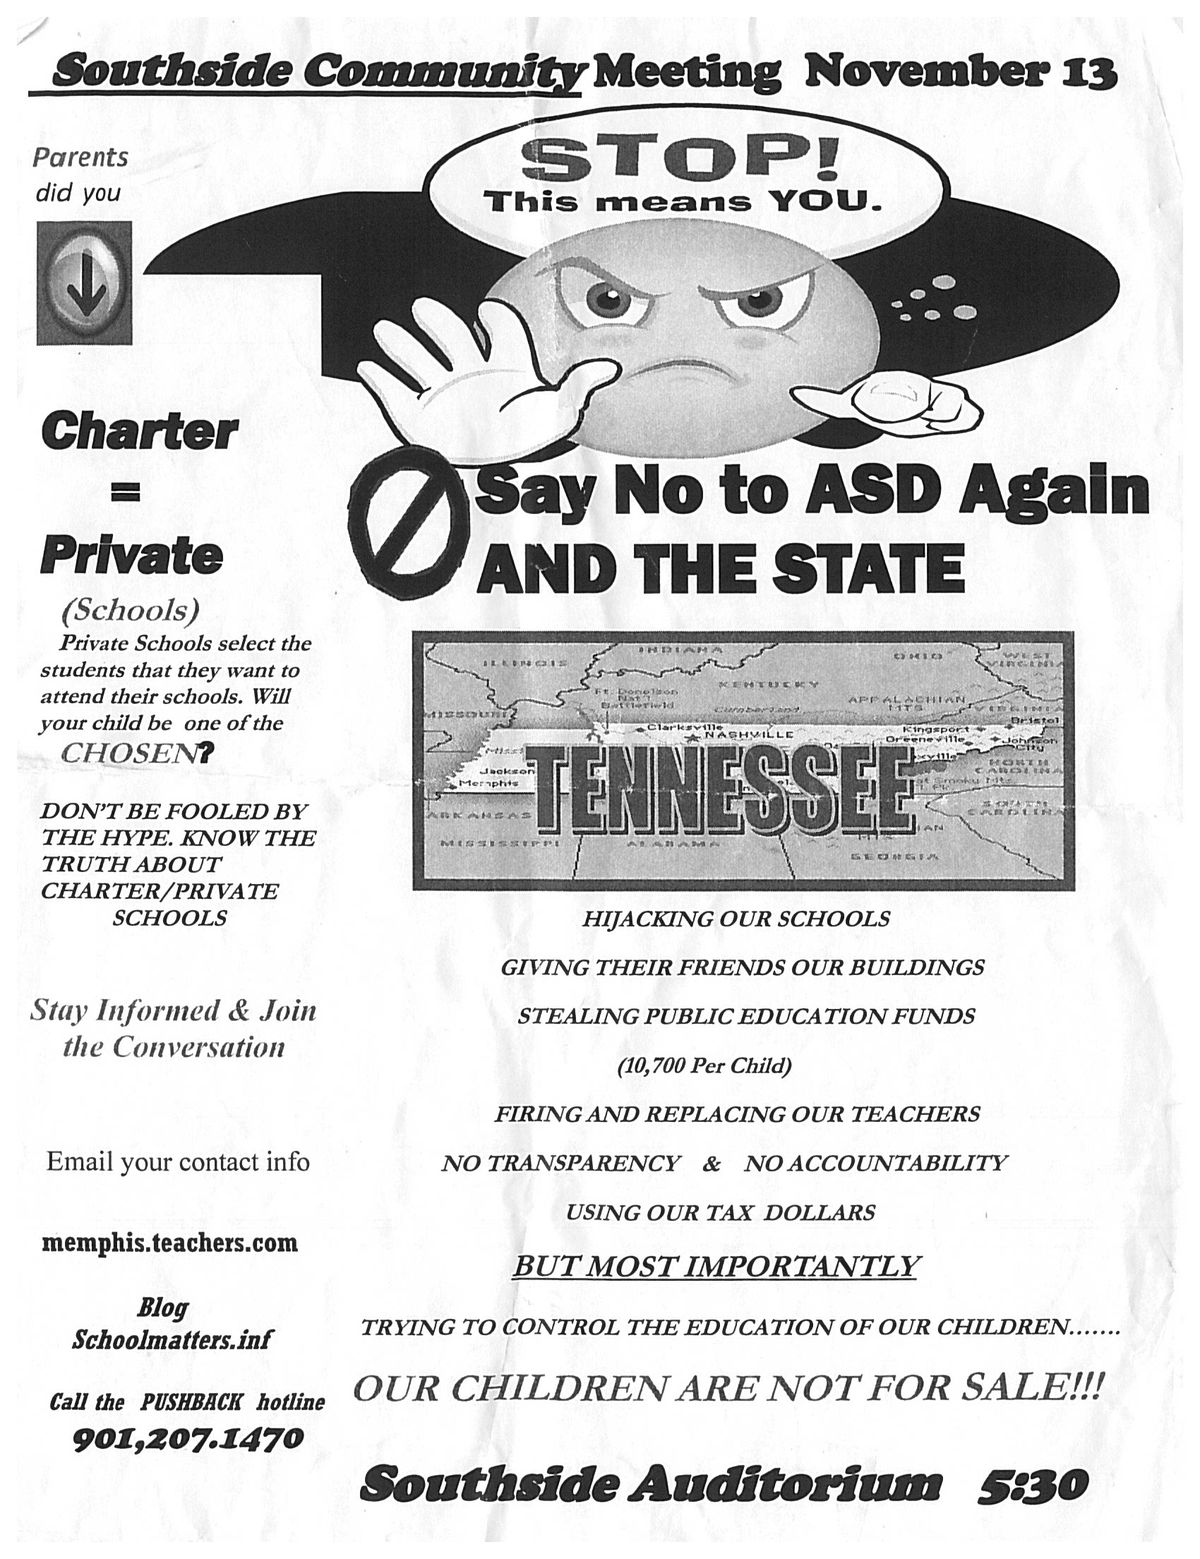 This flyer was placed under attendees' cars at a school fair this past weekend.